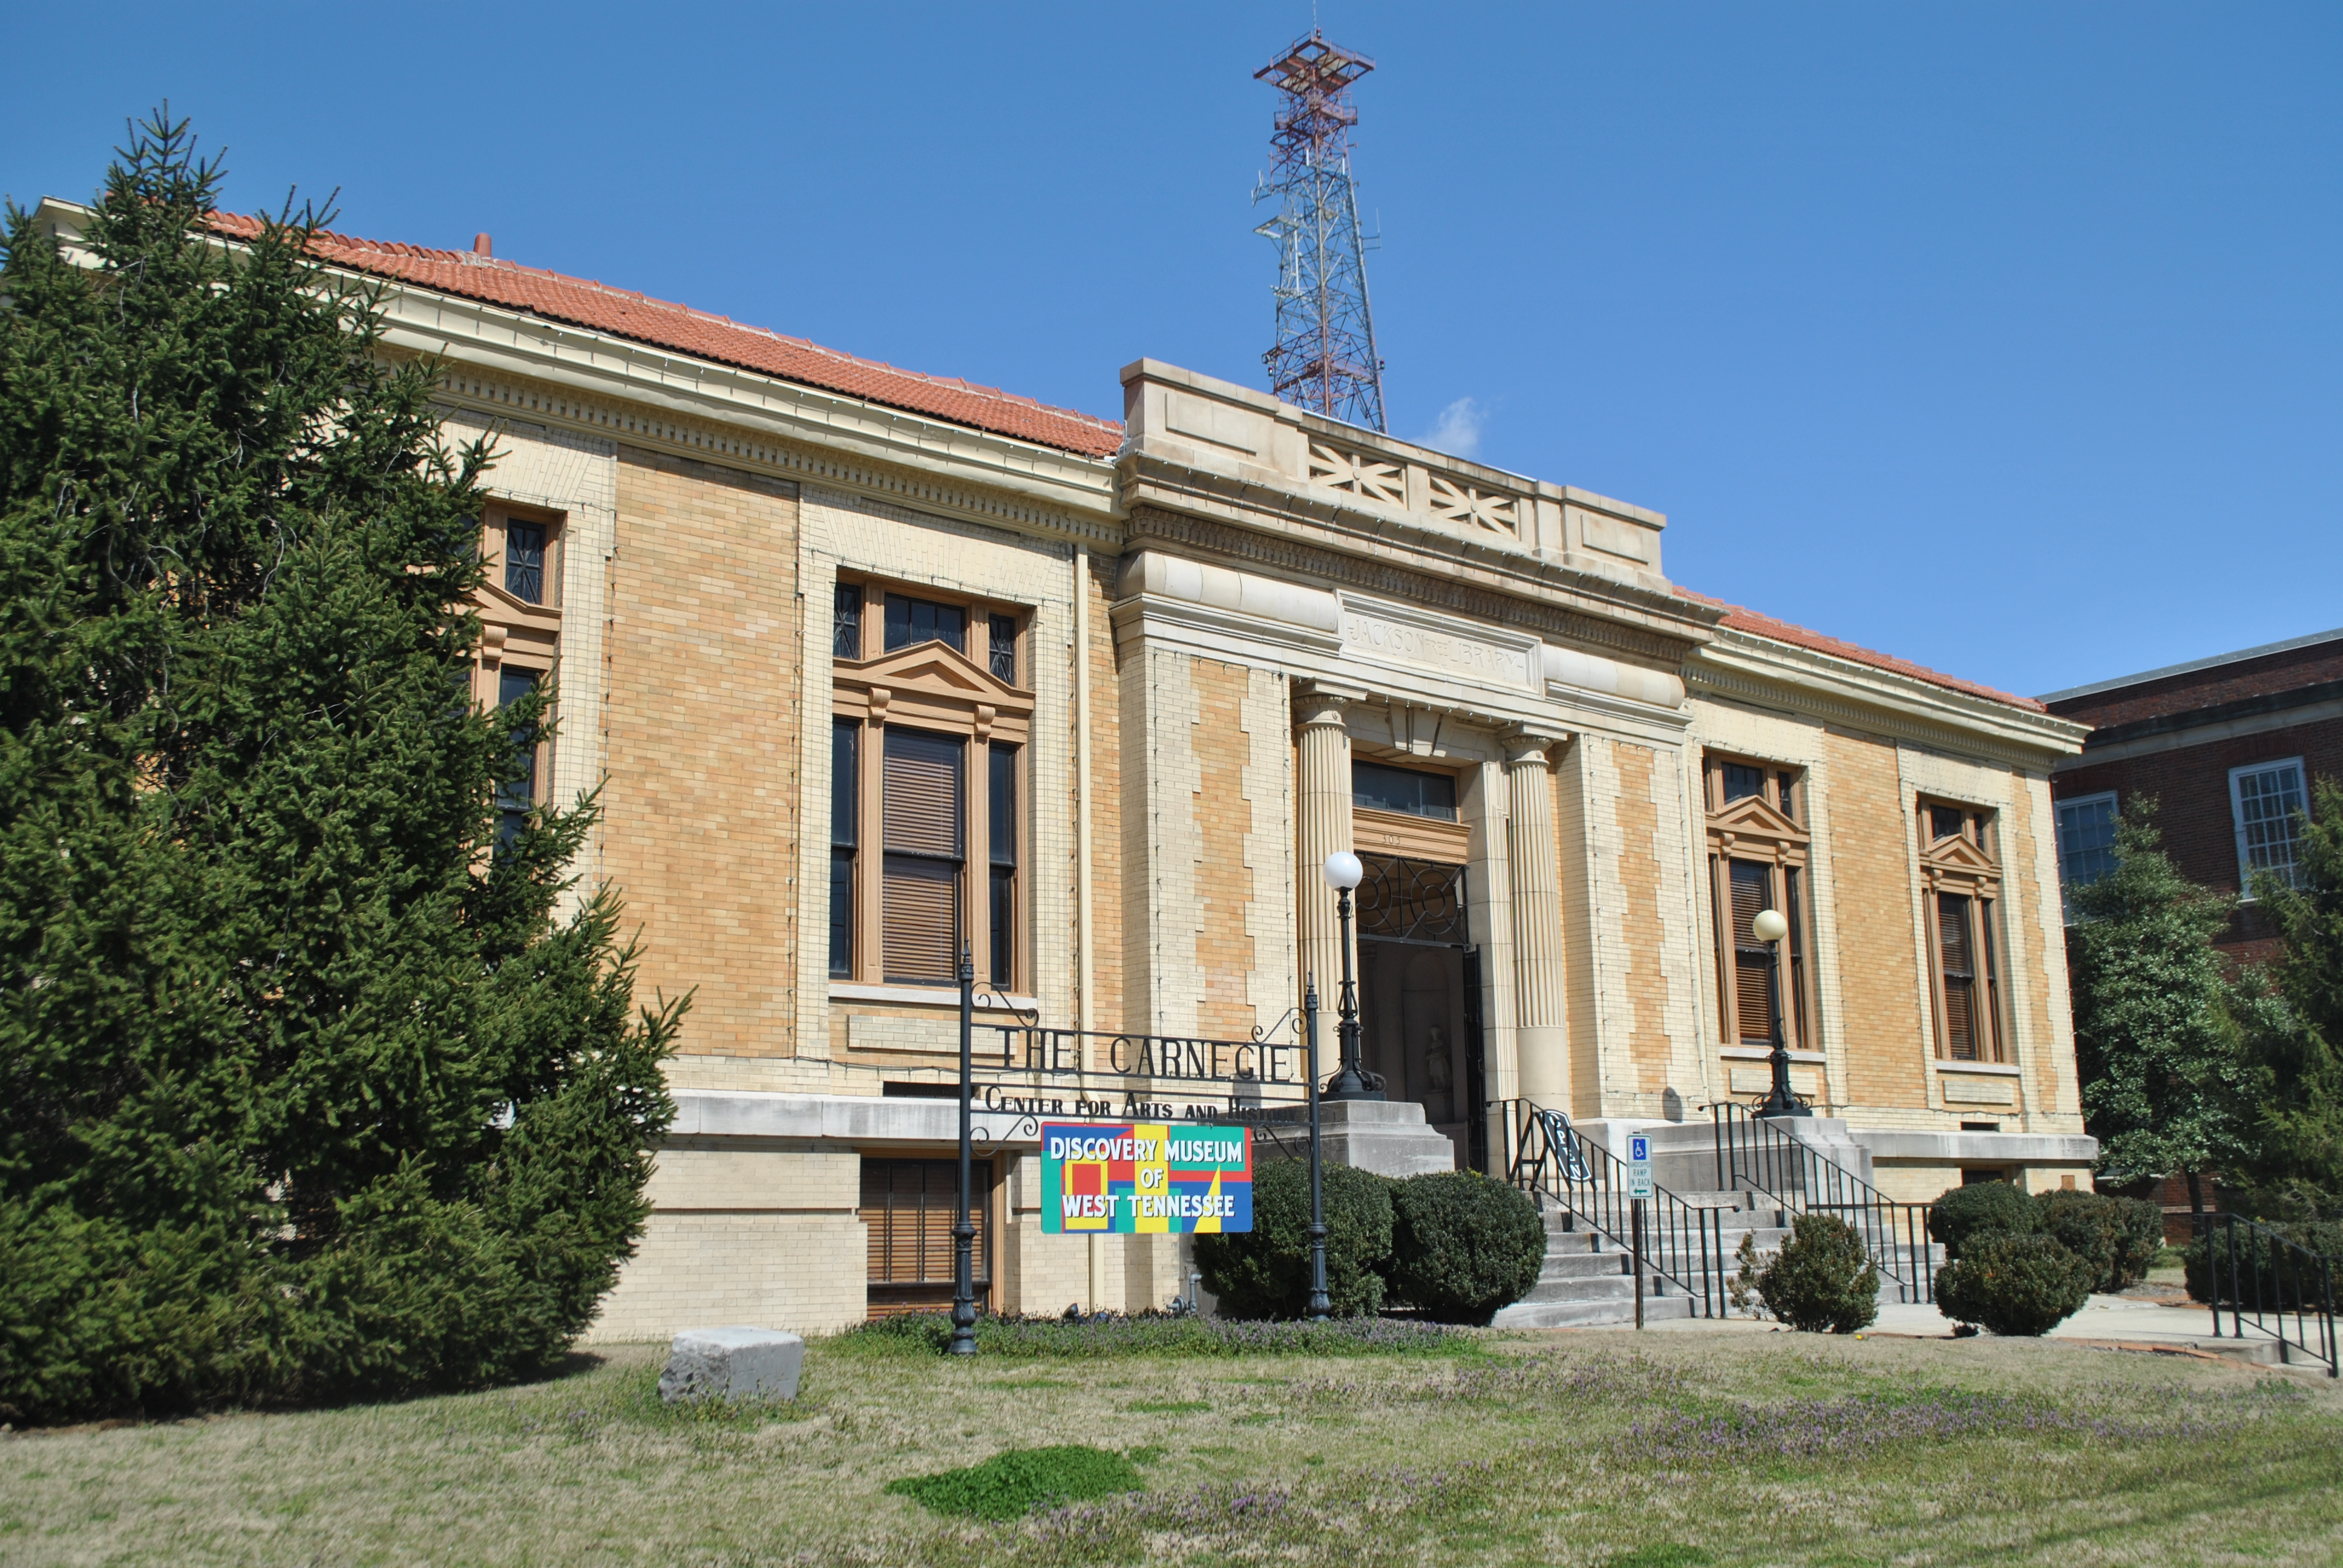 """Carnegie Center for Arts and History, Jackson Free Library.   """"Jackson Free Library"""" by Www78 - Own work. Licensed under CC BY-SA 3.0 via Wikimedia Commons - http://commons.wikimedia.org/wiki/File:Jackson_Free_Library.JPG#mediaviewer/File:Jackson"""